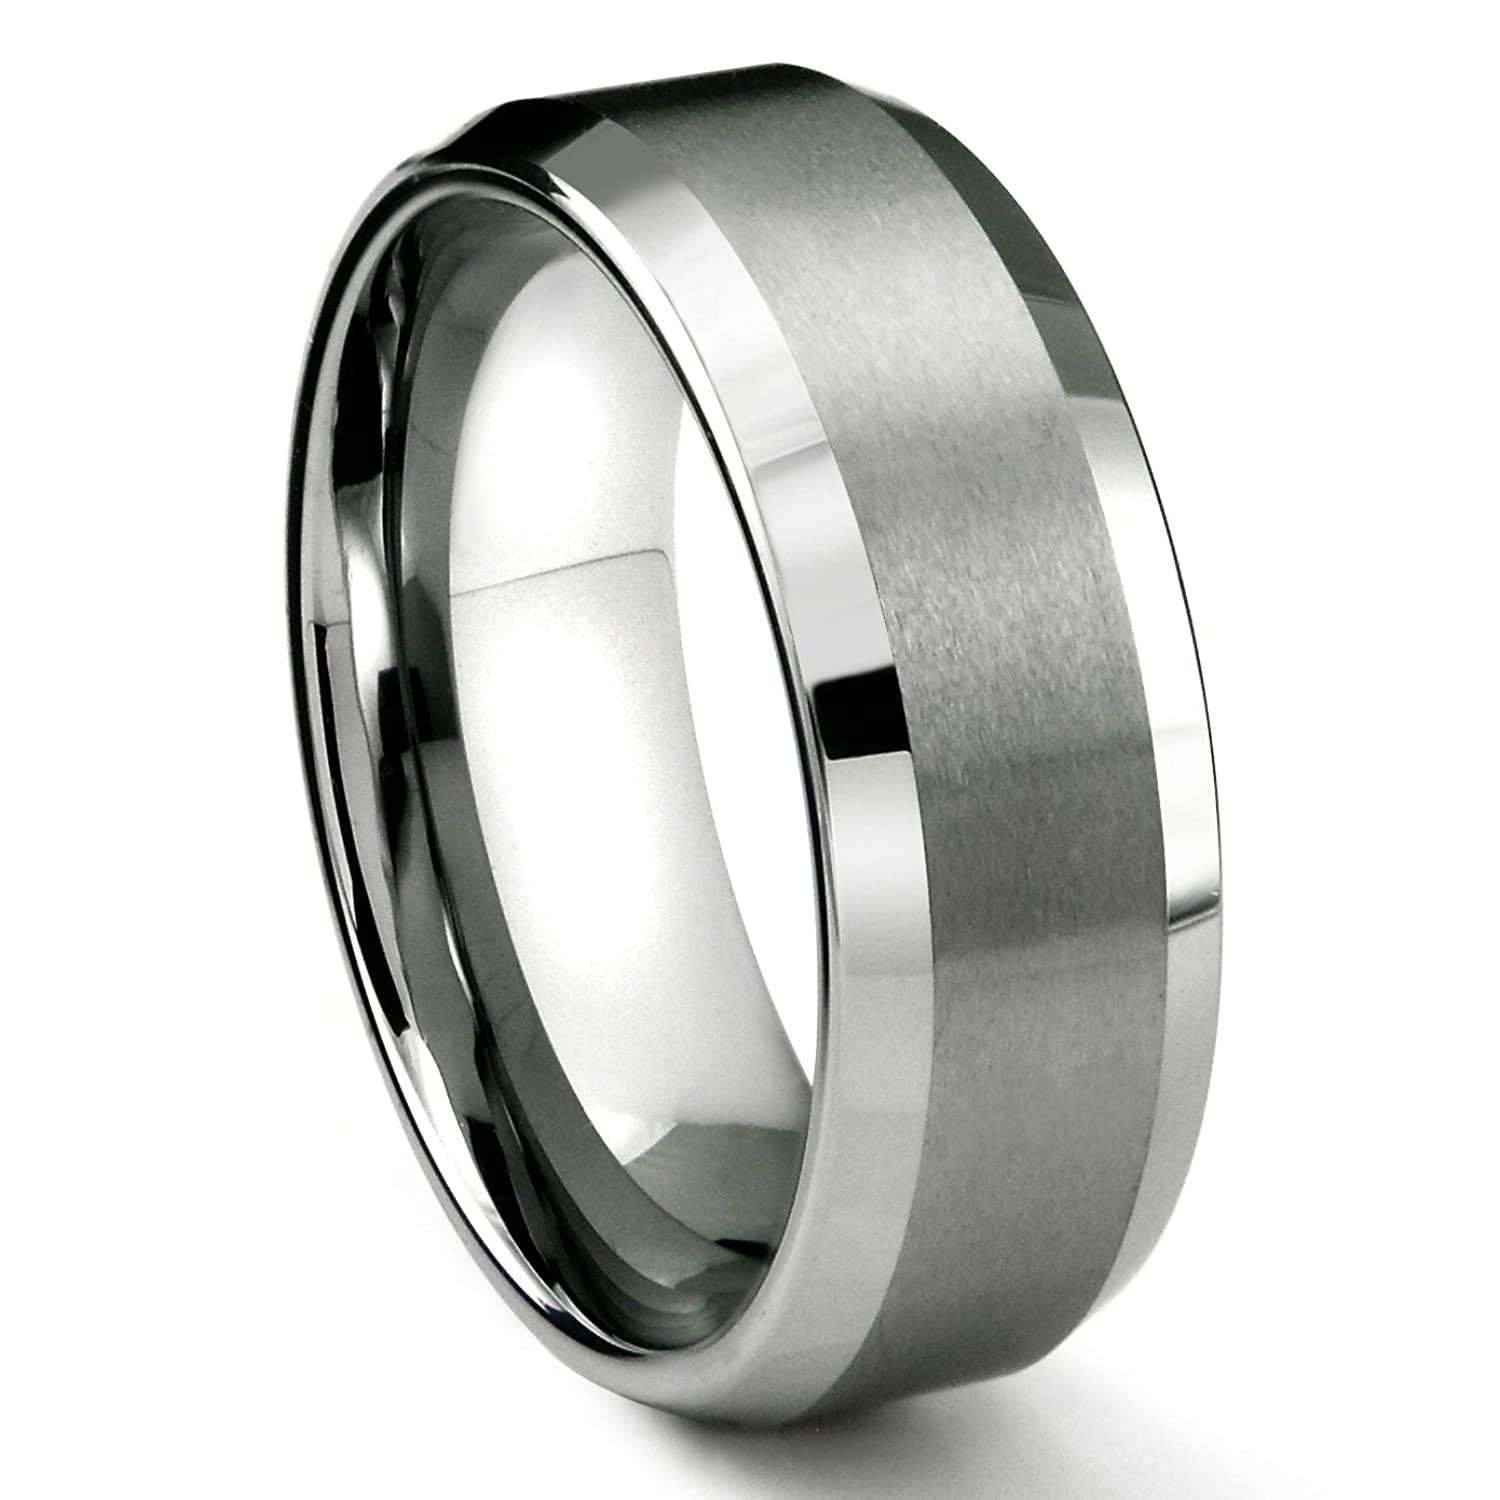 carbide black band hover kaystore mv kay wedding triton rings to zm en tungsten zoom mens